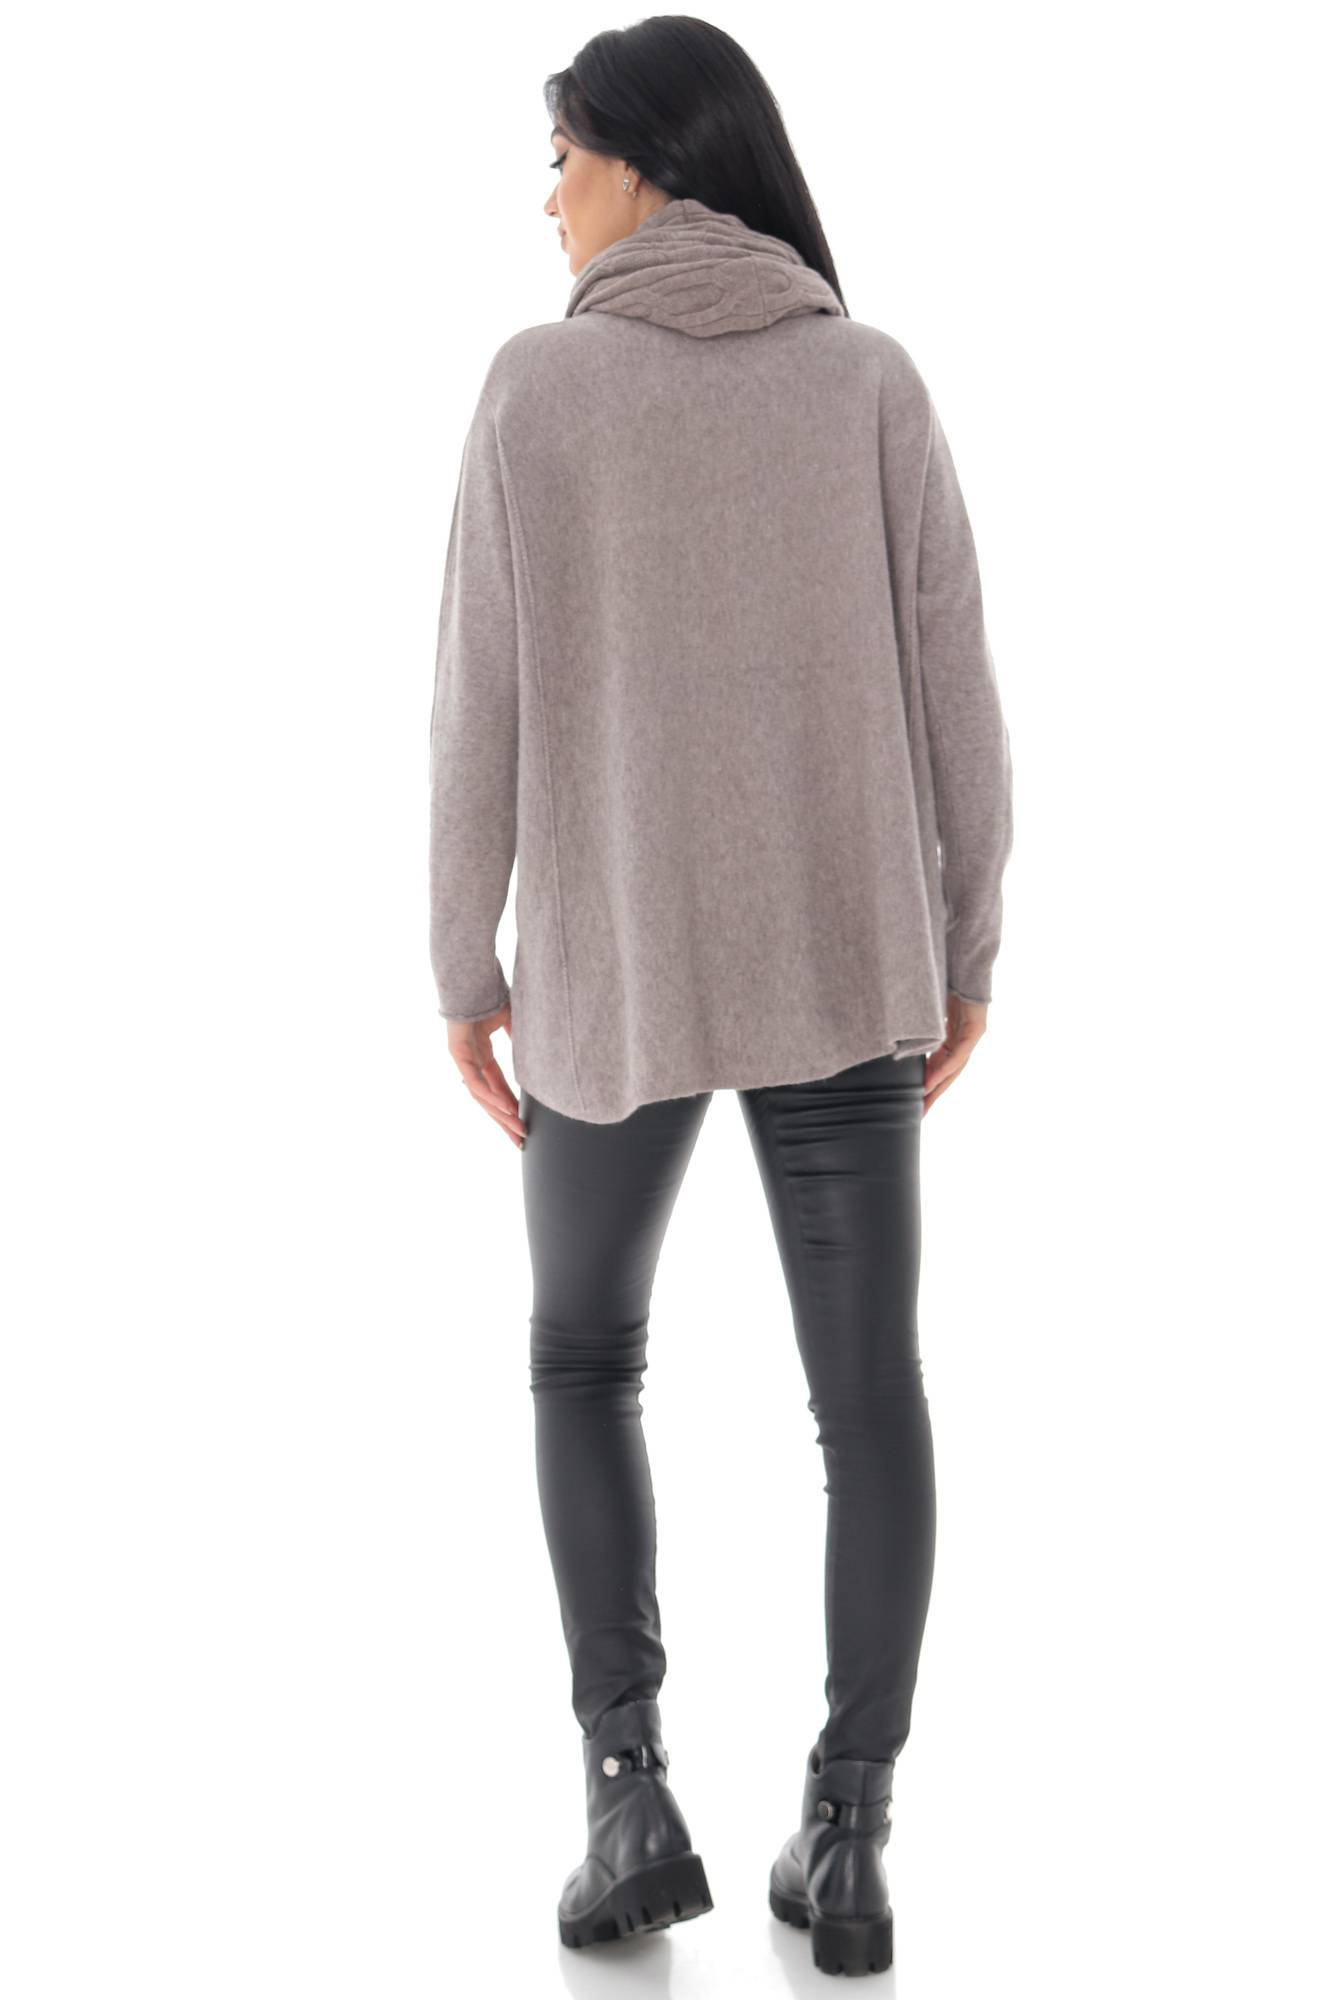 Oversized knitted jumper in beige with a separate snood - AIMELIA - BR2392 Aimelia Apparel Limited